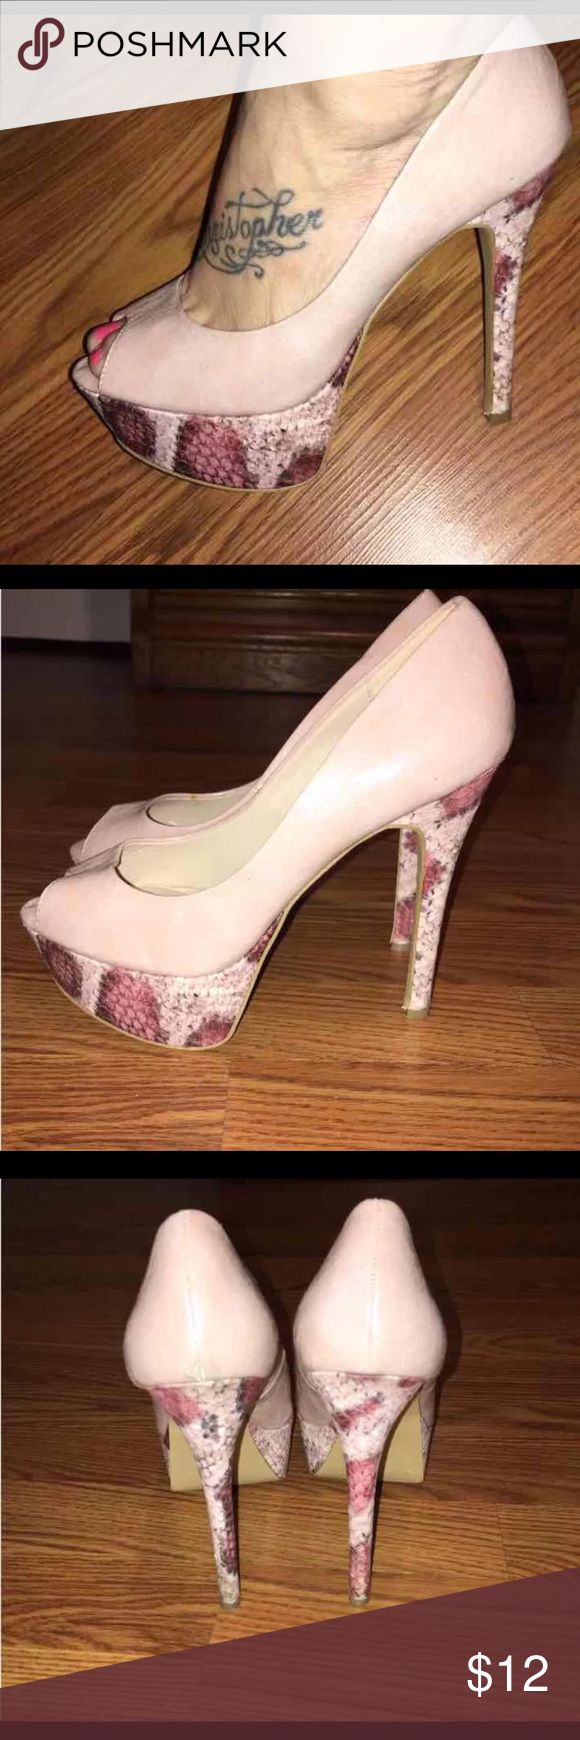 Just Fab Pink Snakeskin Heels Size 9 Excellent condition Heels by Just Fab powder Pink Snakeskin print Size 9 JustFab Shoes Heels